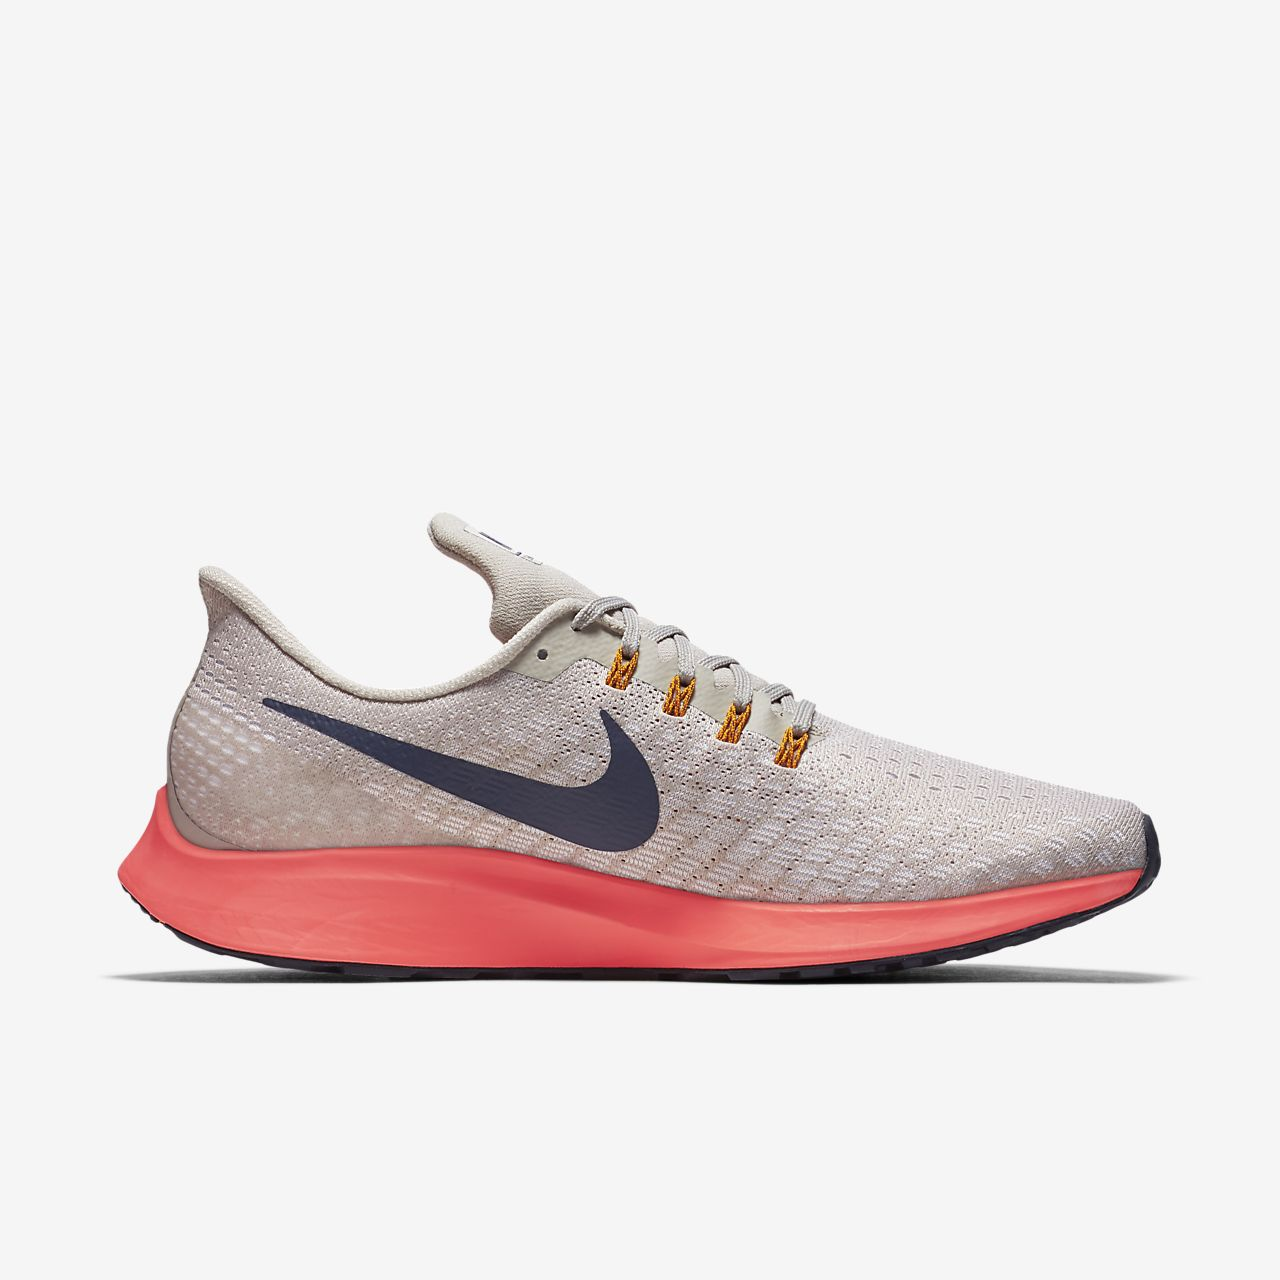 b8d0c5f0289305 Nike Air Zoom Pegasus 35 Men s Running Shoe. Nike.com